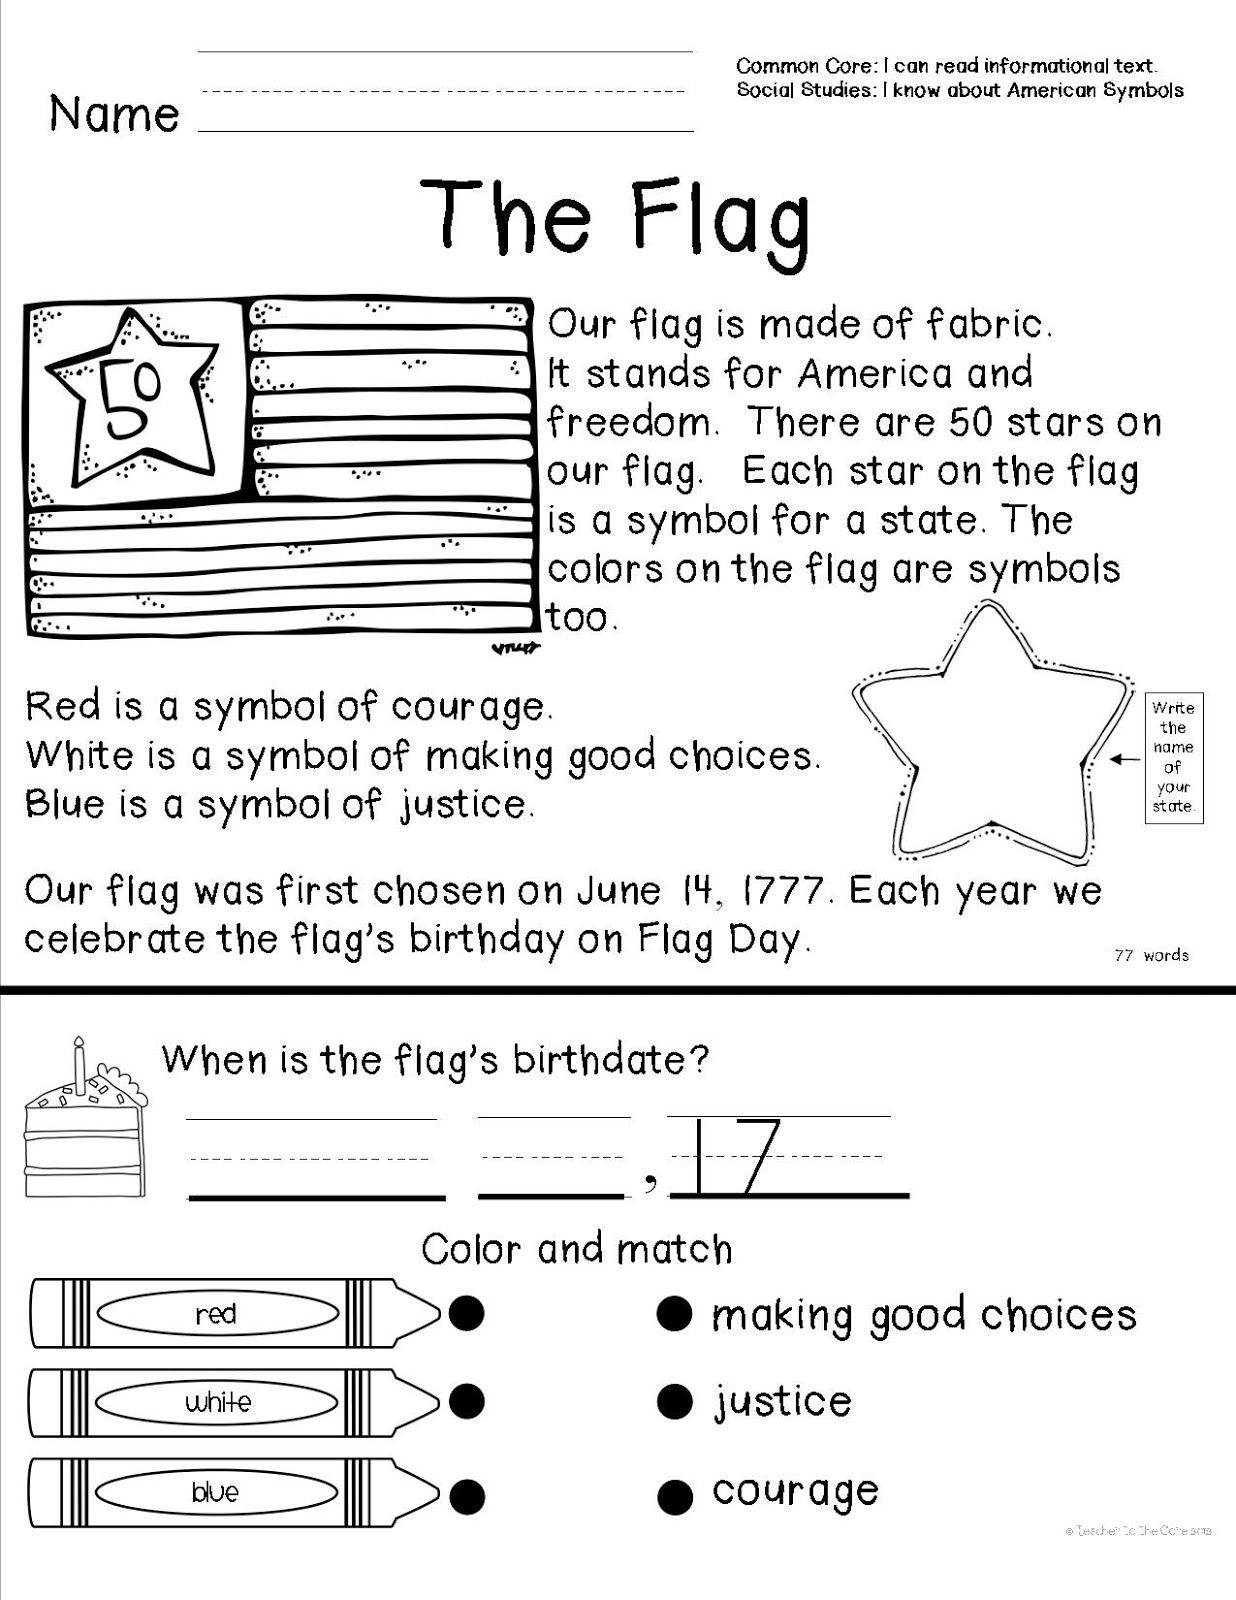 I Have Taught This For 4 Years And Got The Best Clip Art To Turn It Into A Fabulous U American Symbols Social Studies Worksheets Kindergarten Social Studies